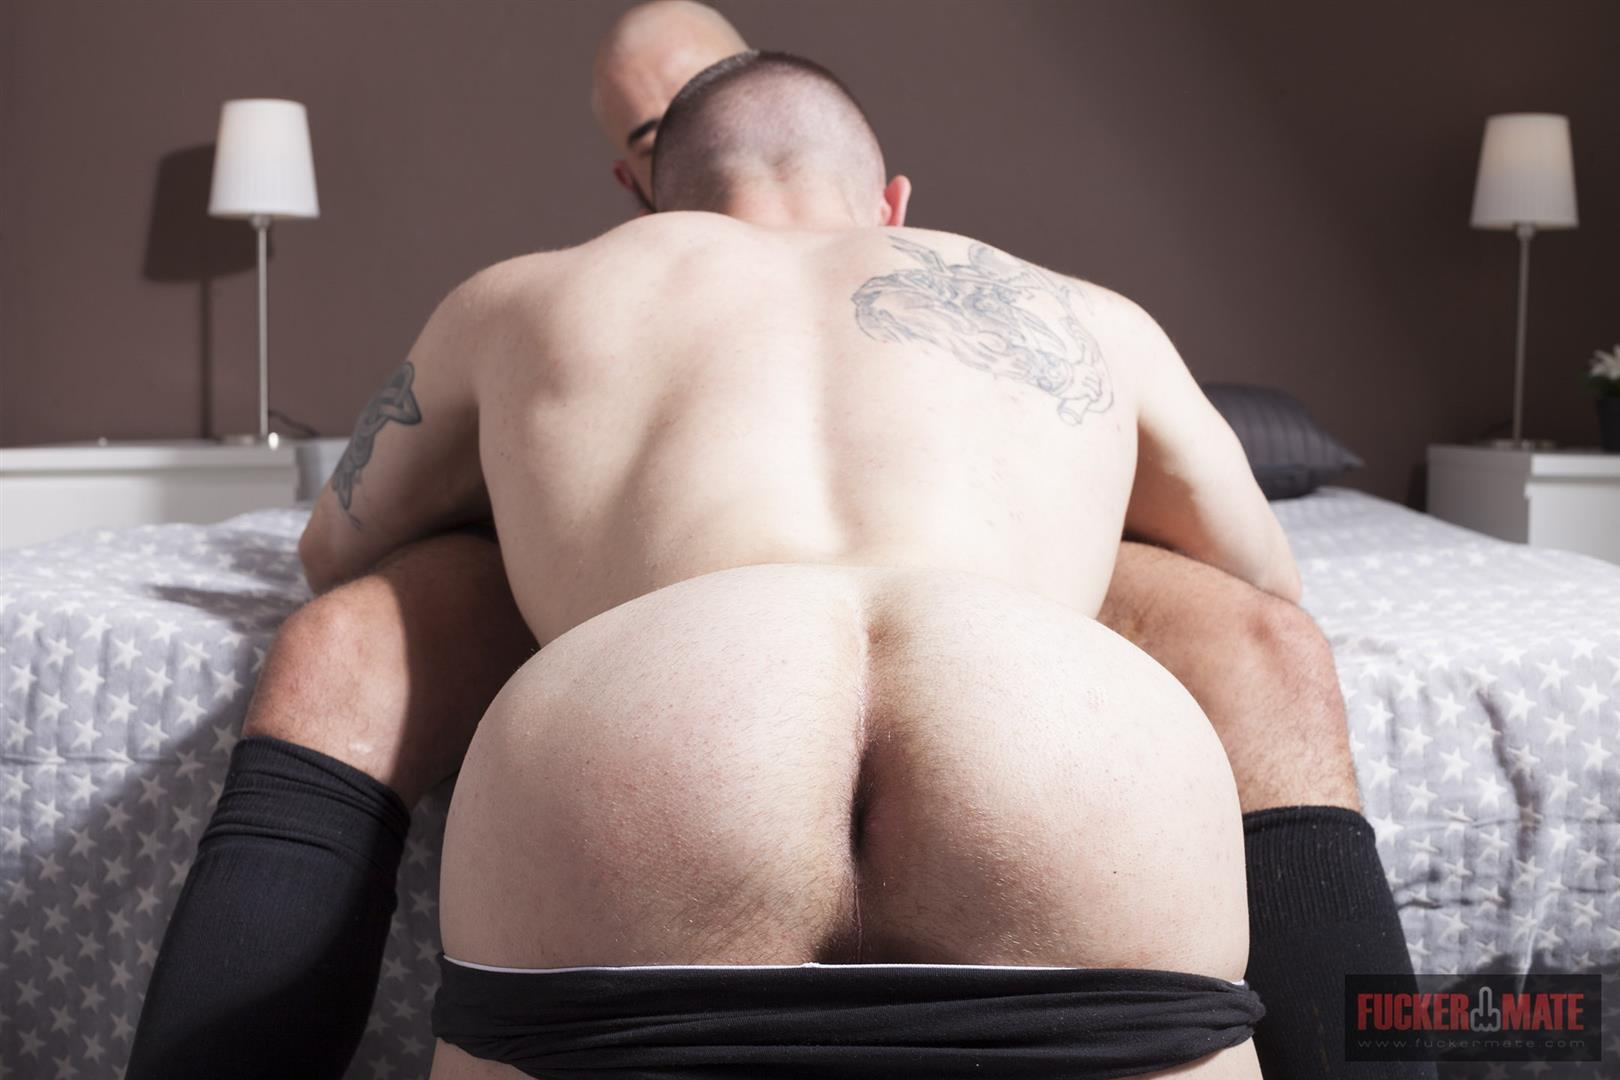 Fuckermate-Carlo-Fiero-and-Dalton-Sirius-Big-Uncut-Cock-Bareback-Amateur-Gay-Porn-4 Tatted Muscled Spaniard Gets Barebacked By A Huge Uncut Cock